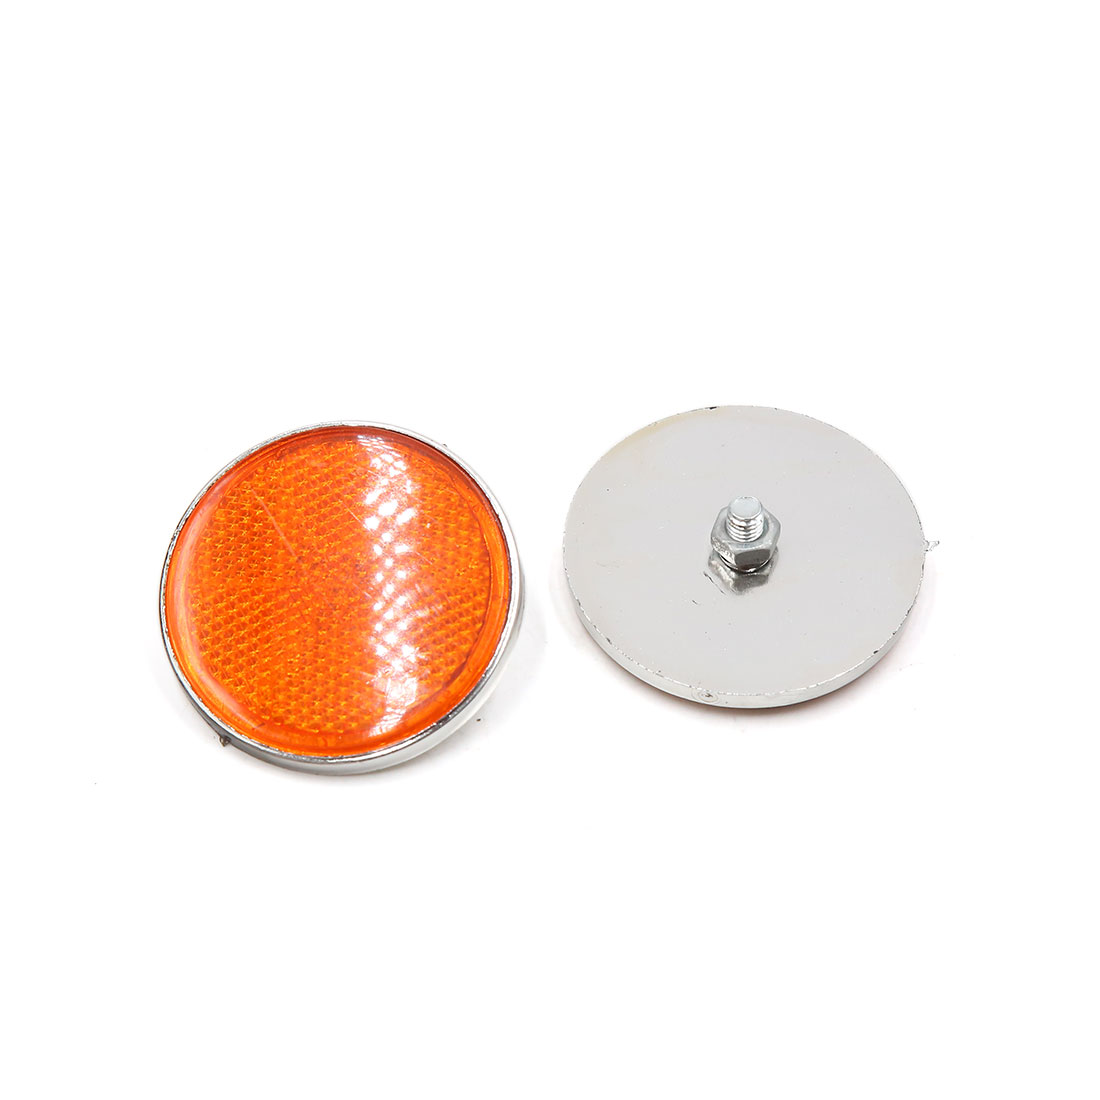 15 Pcs 55mm Dia Orange White Plastic Round Reflective Reflector for Motorbike - image 1 de 2